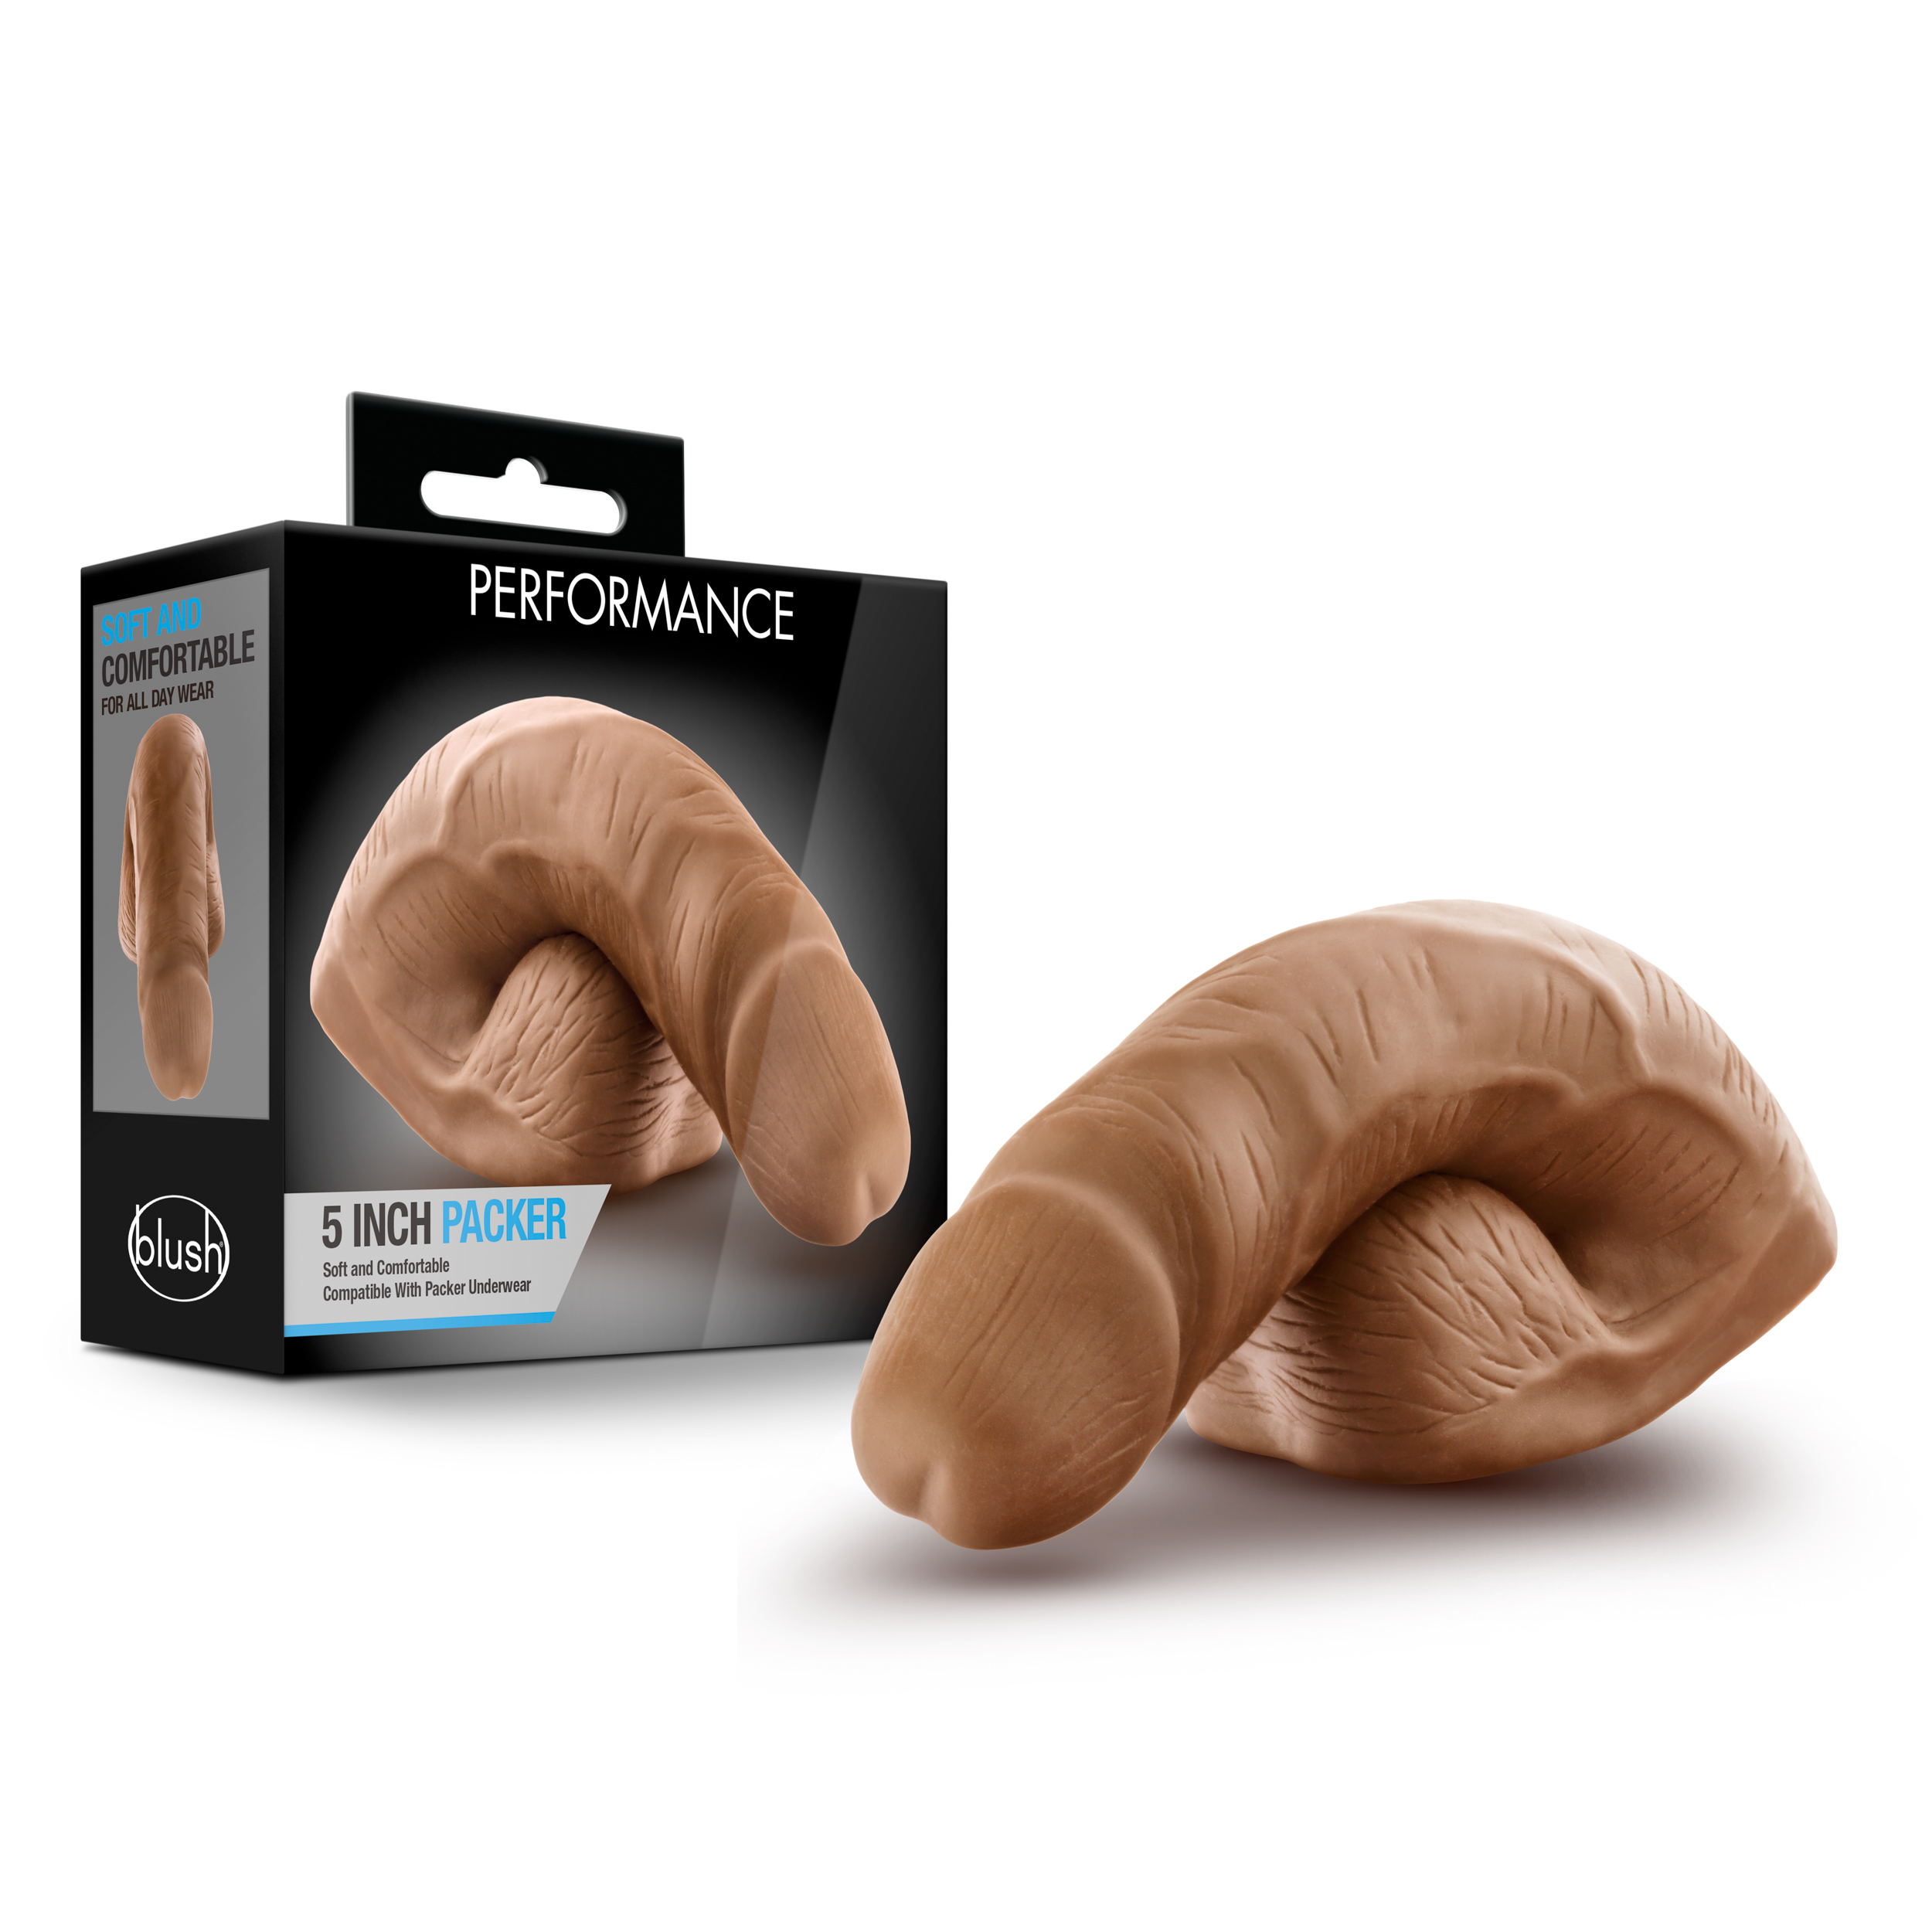 Performance - 5 Inch Packer - Mocha